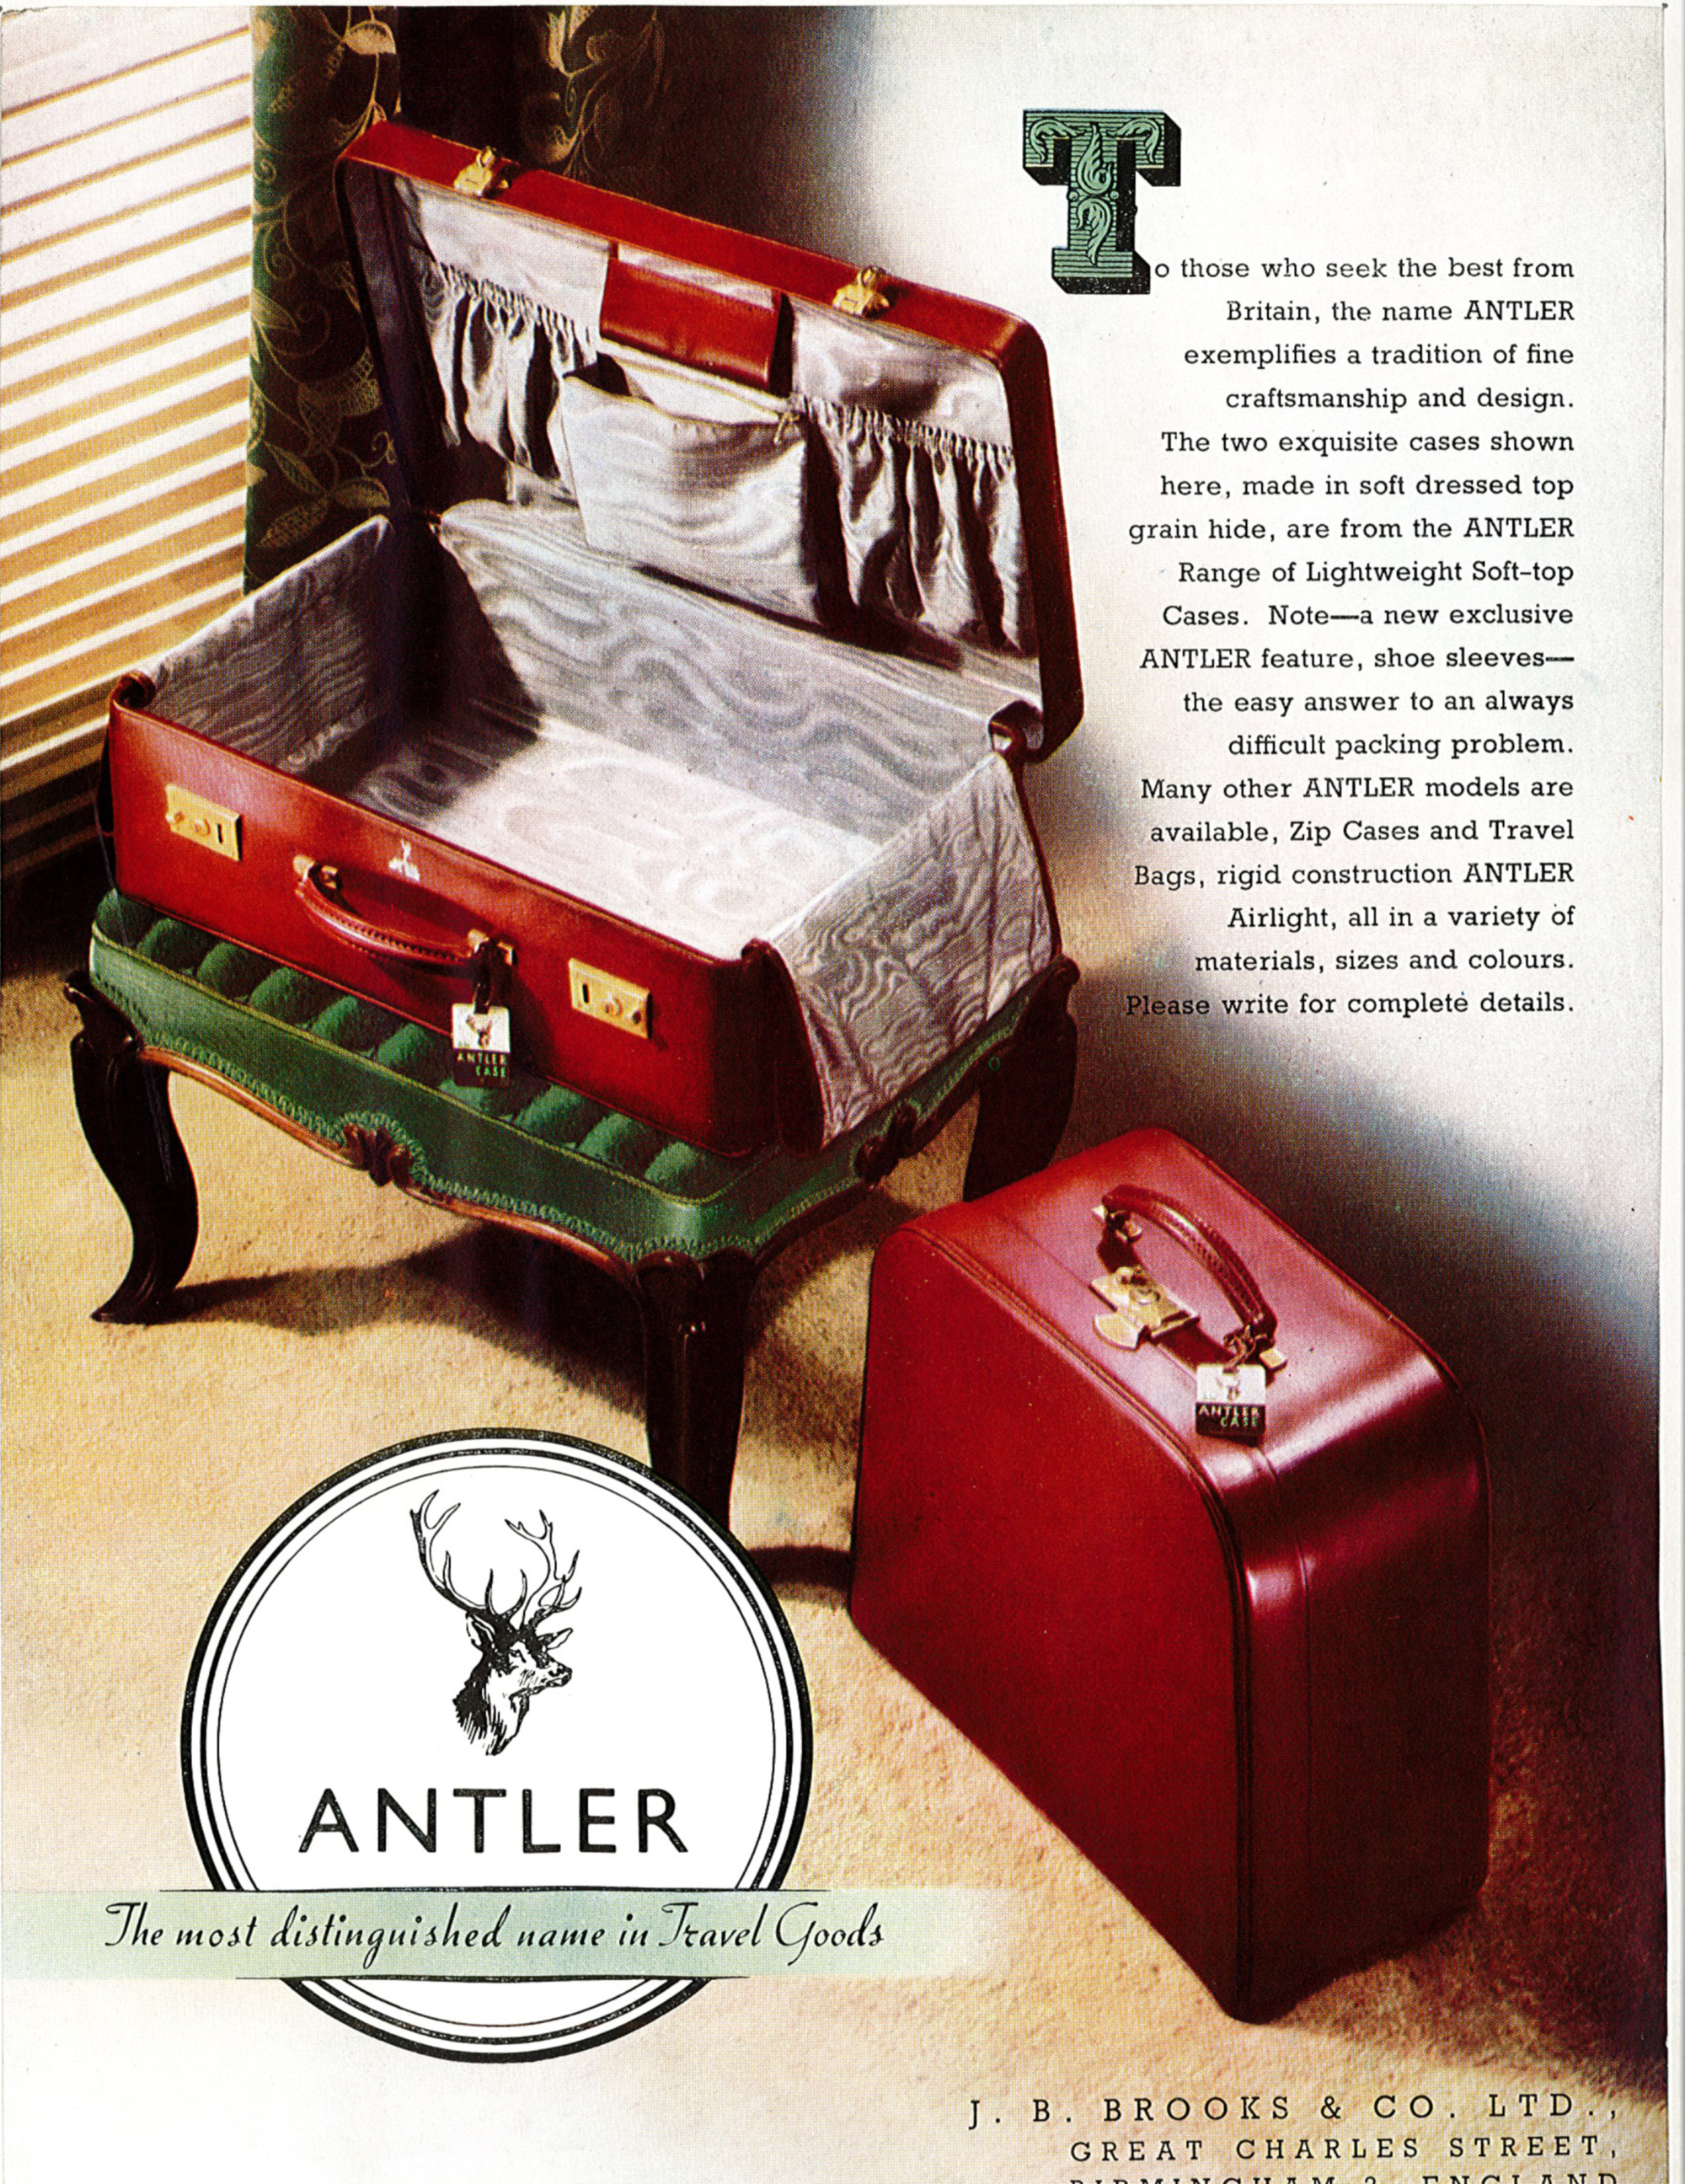 ebykr-antler-leather-goods-1952-advertisement